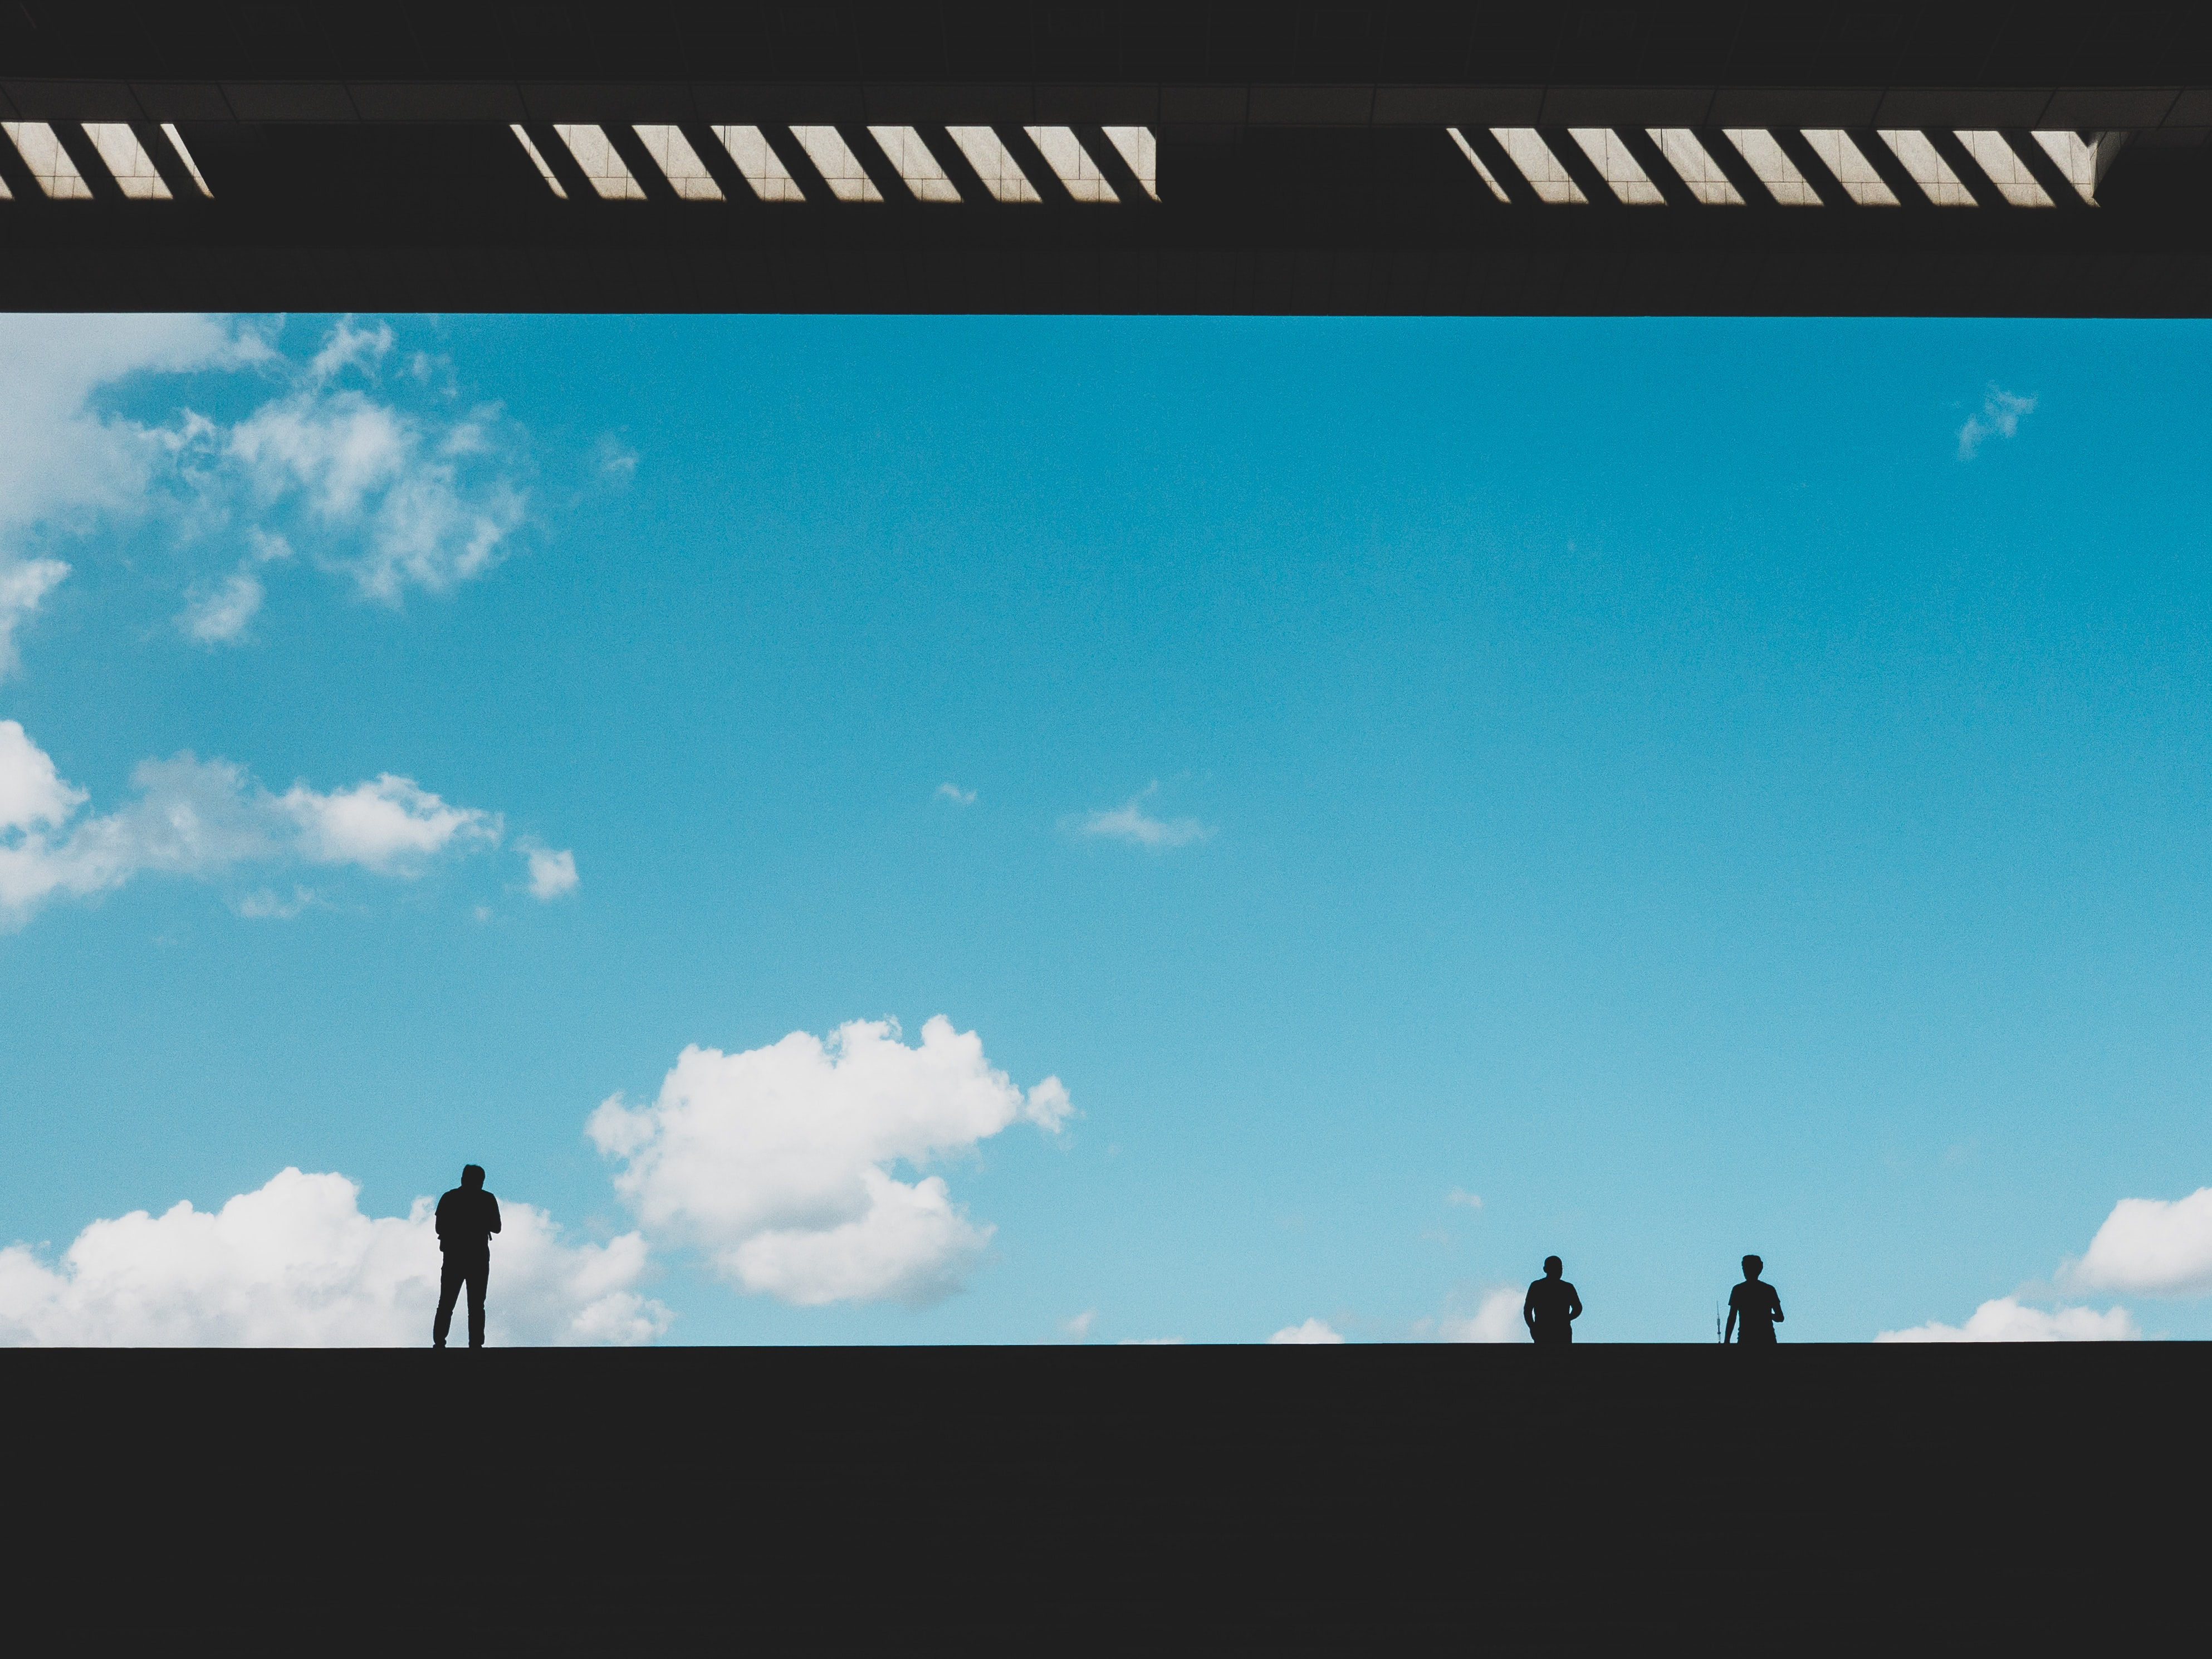 silhouette of three person against blue sky